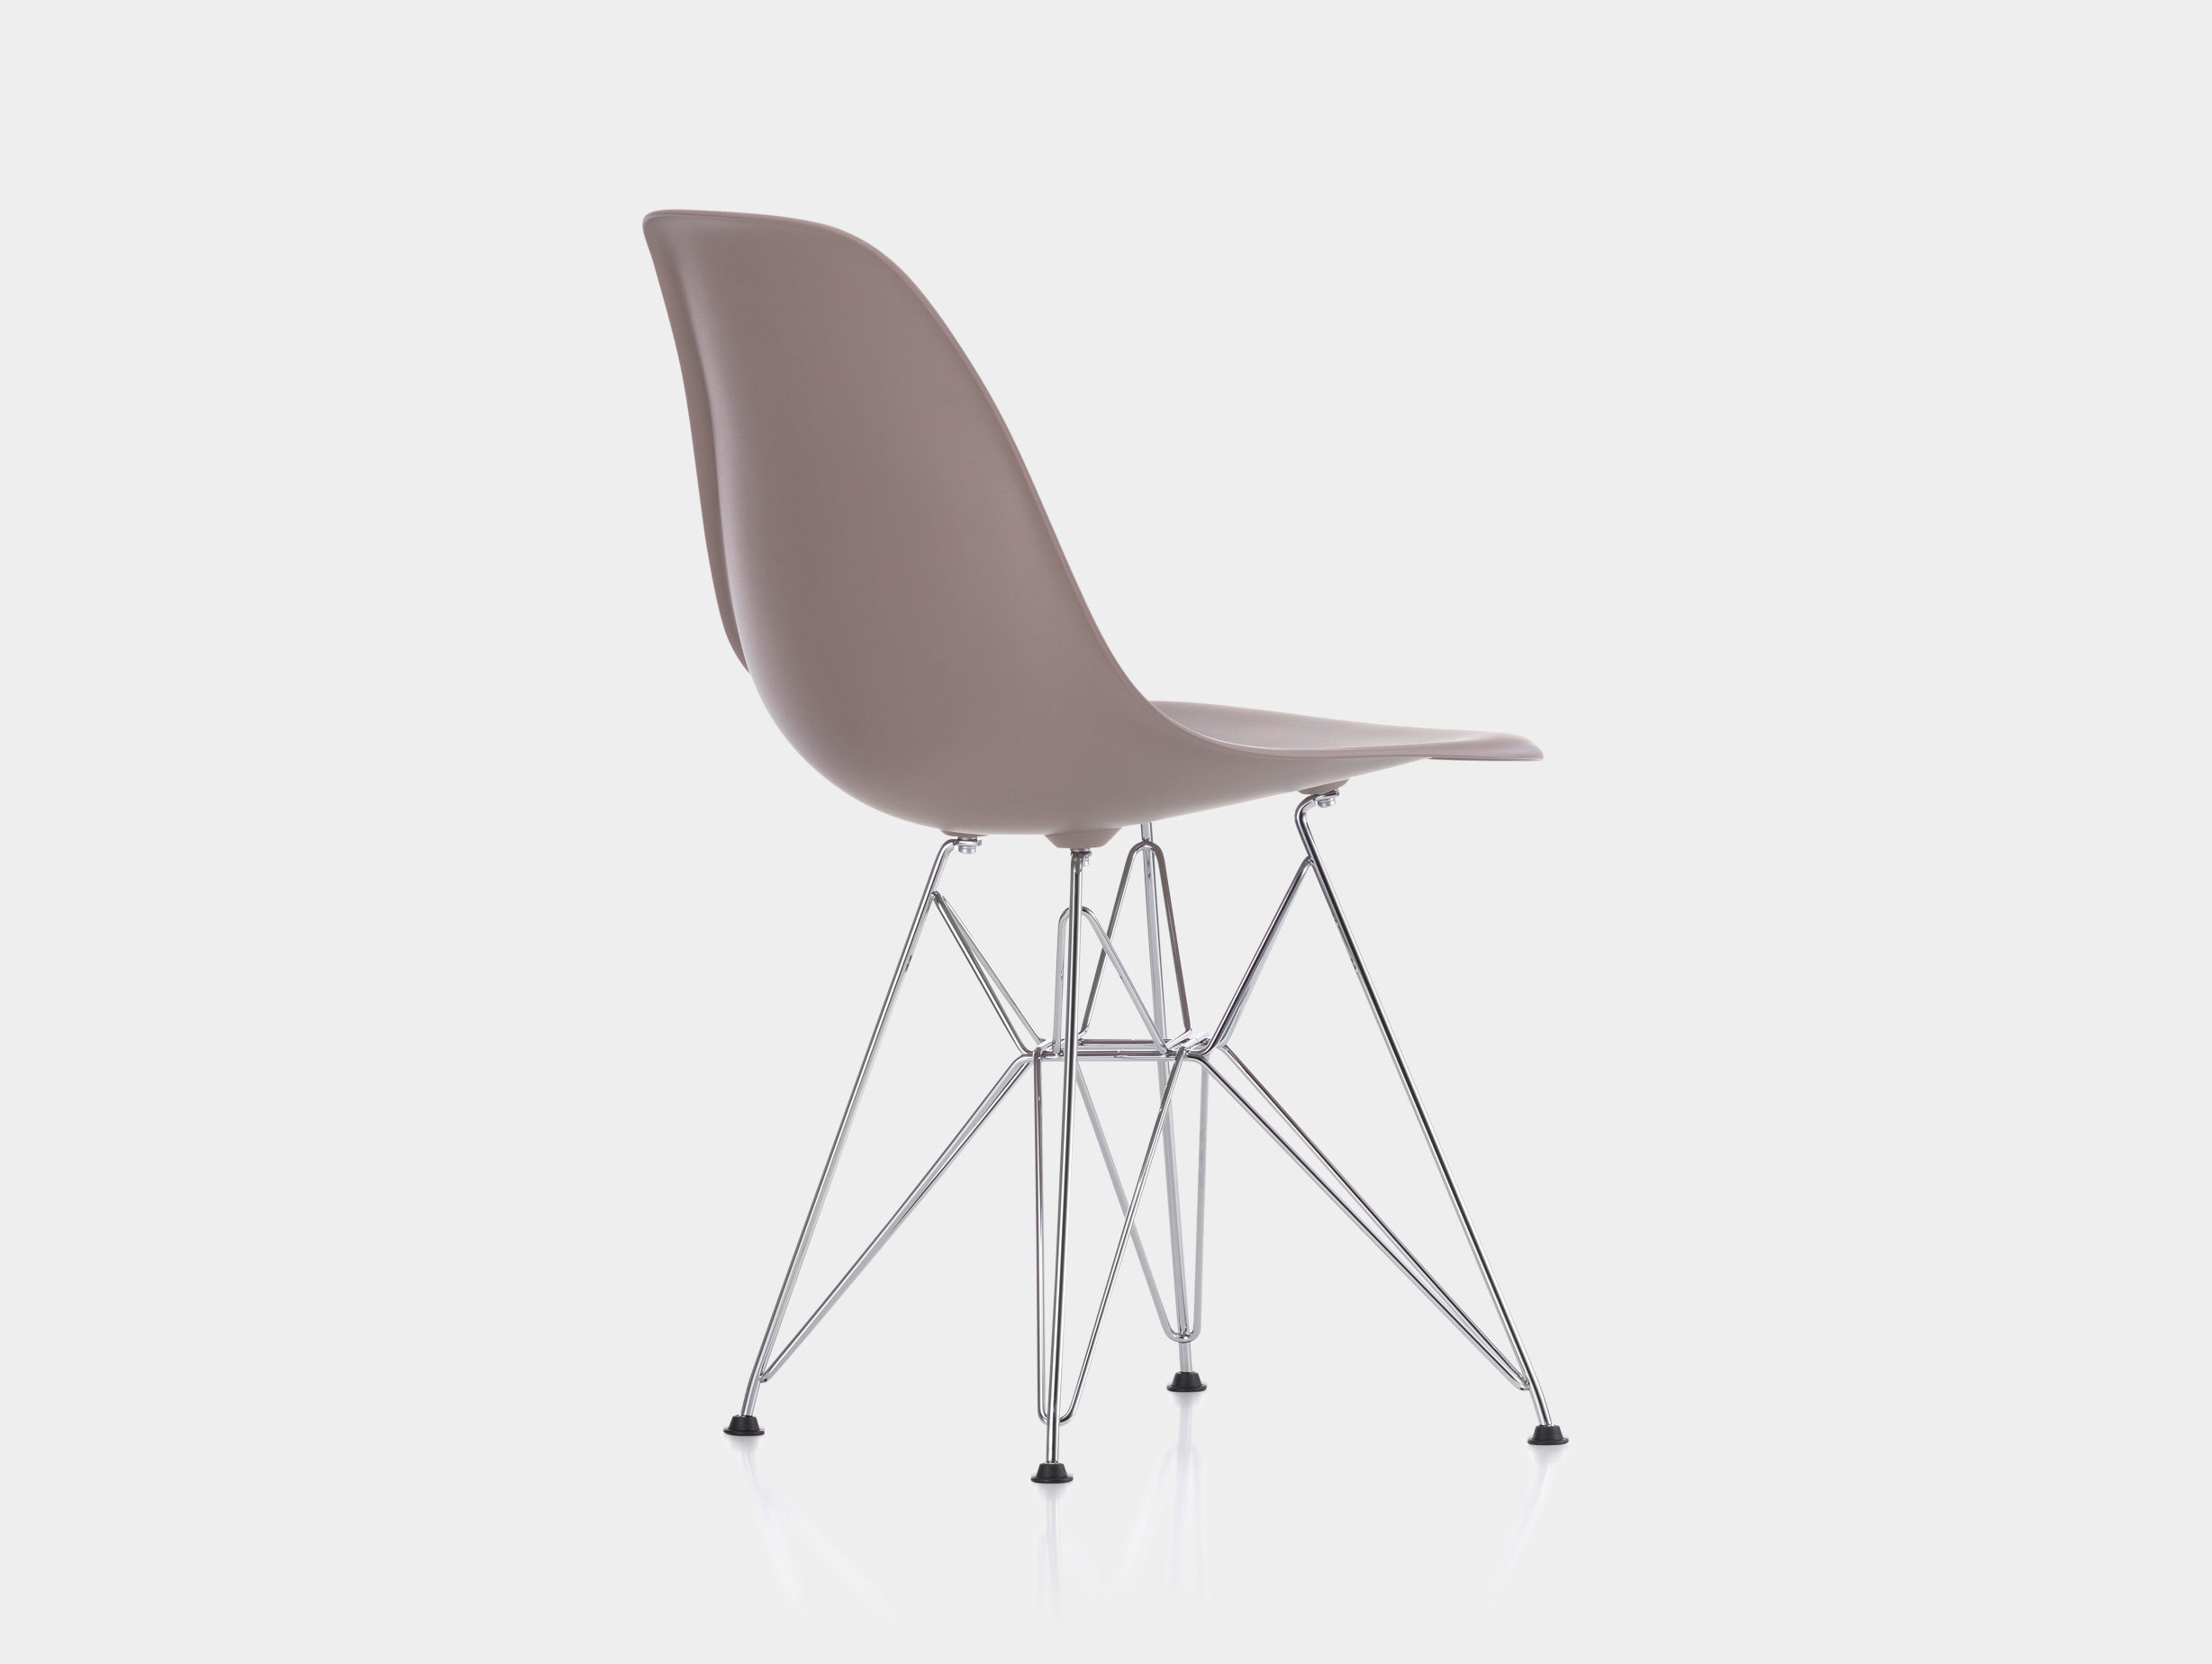 Eames DSR Plastic Side Chair image 4